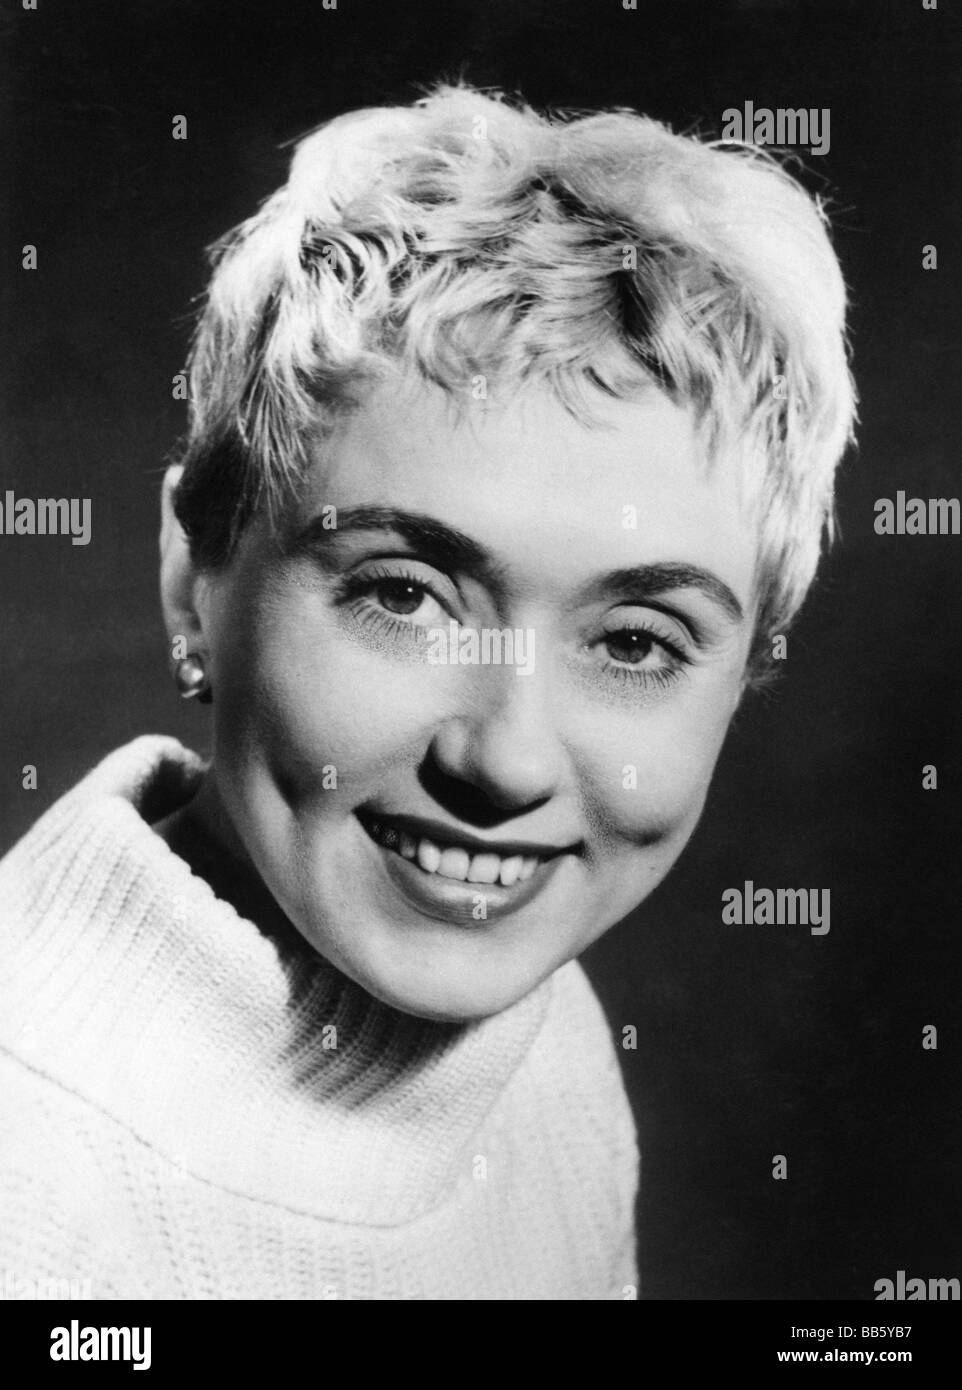 Koenig, Johanna, 27.3.1921 - 3.3.2009, German actress, portrait, circa 1950, Additional-Rights-Clearances-NA - Stock Image